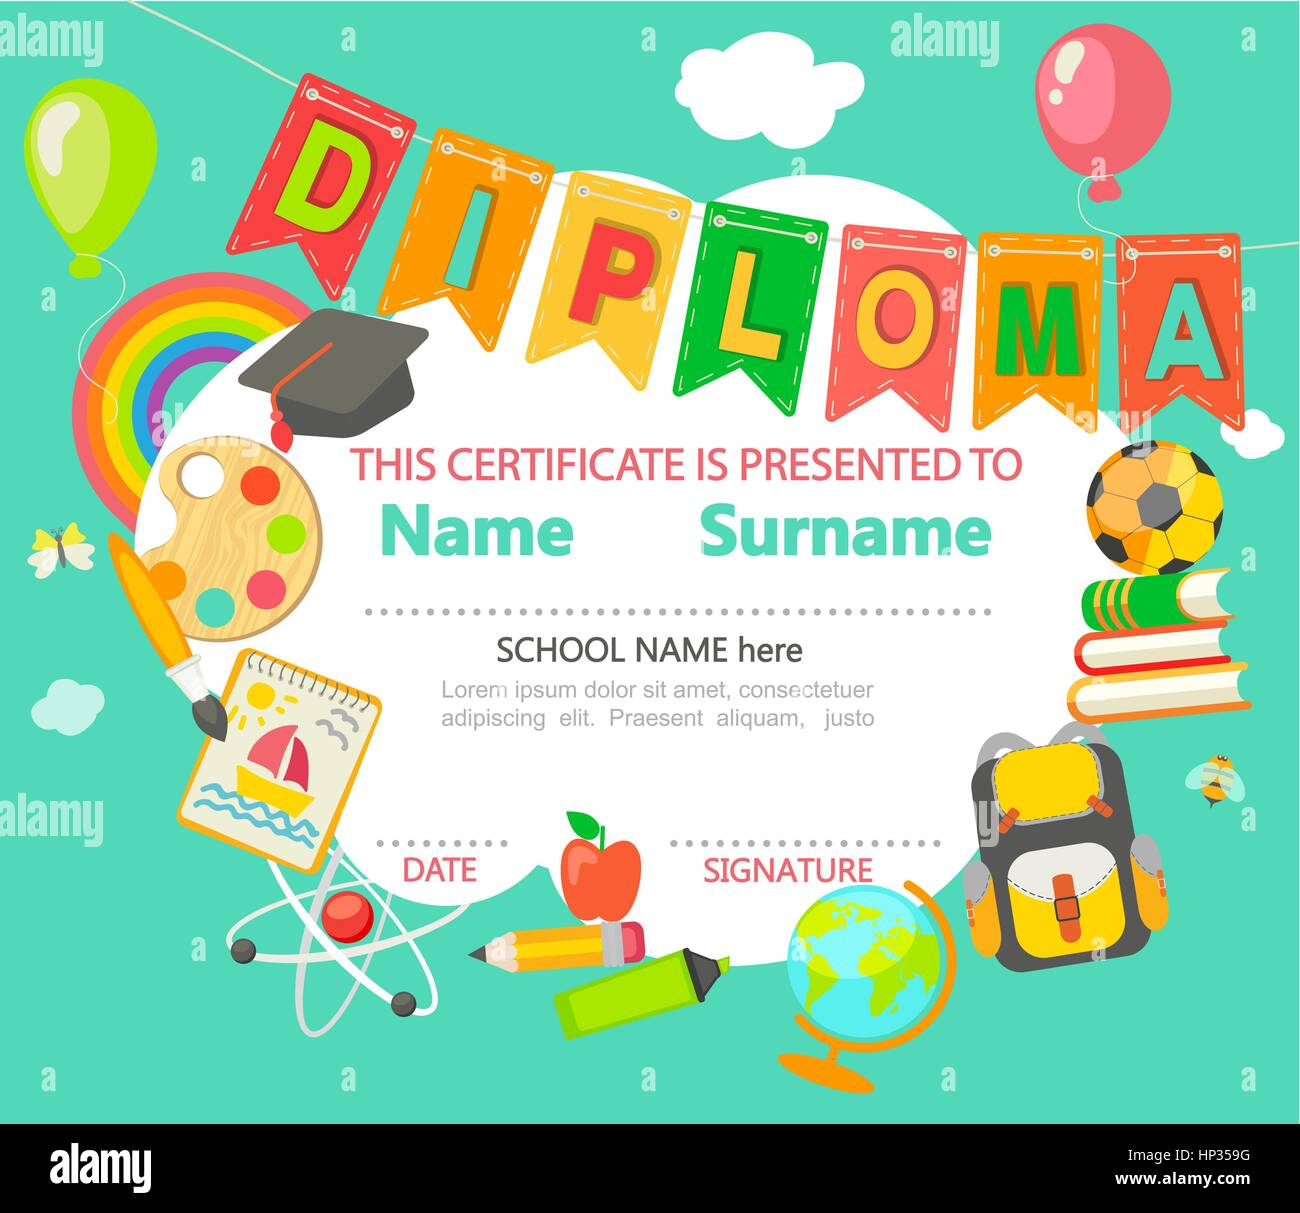 Certificate Stock Vector Images - Alamy